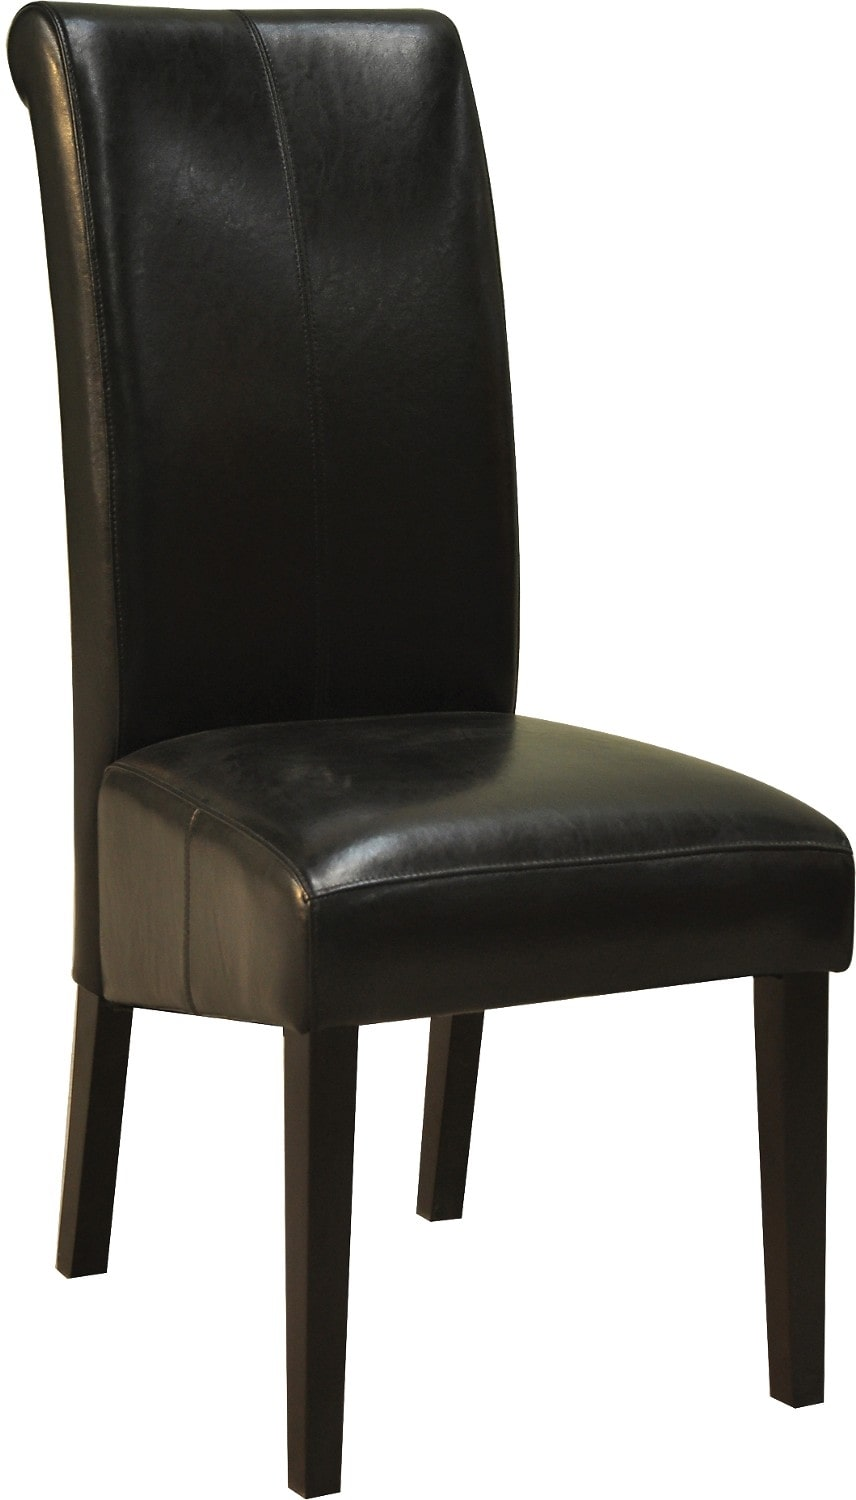 Dining Chair – Black